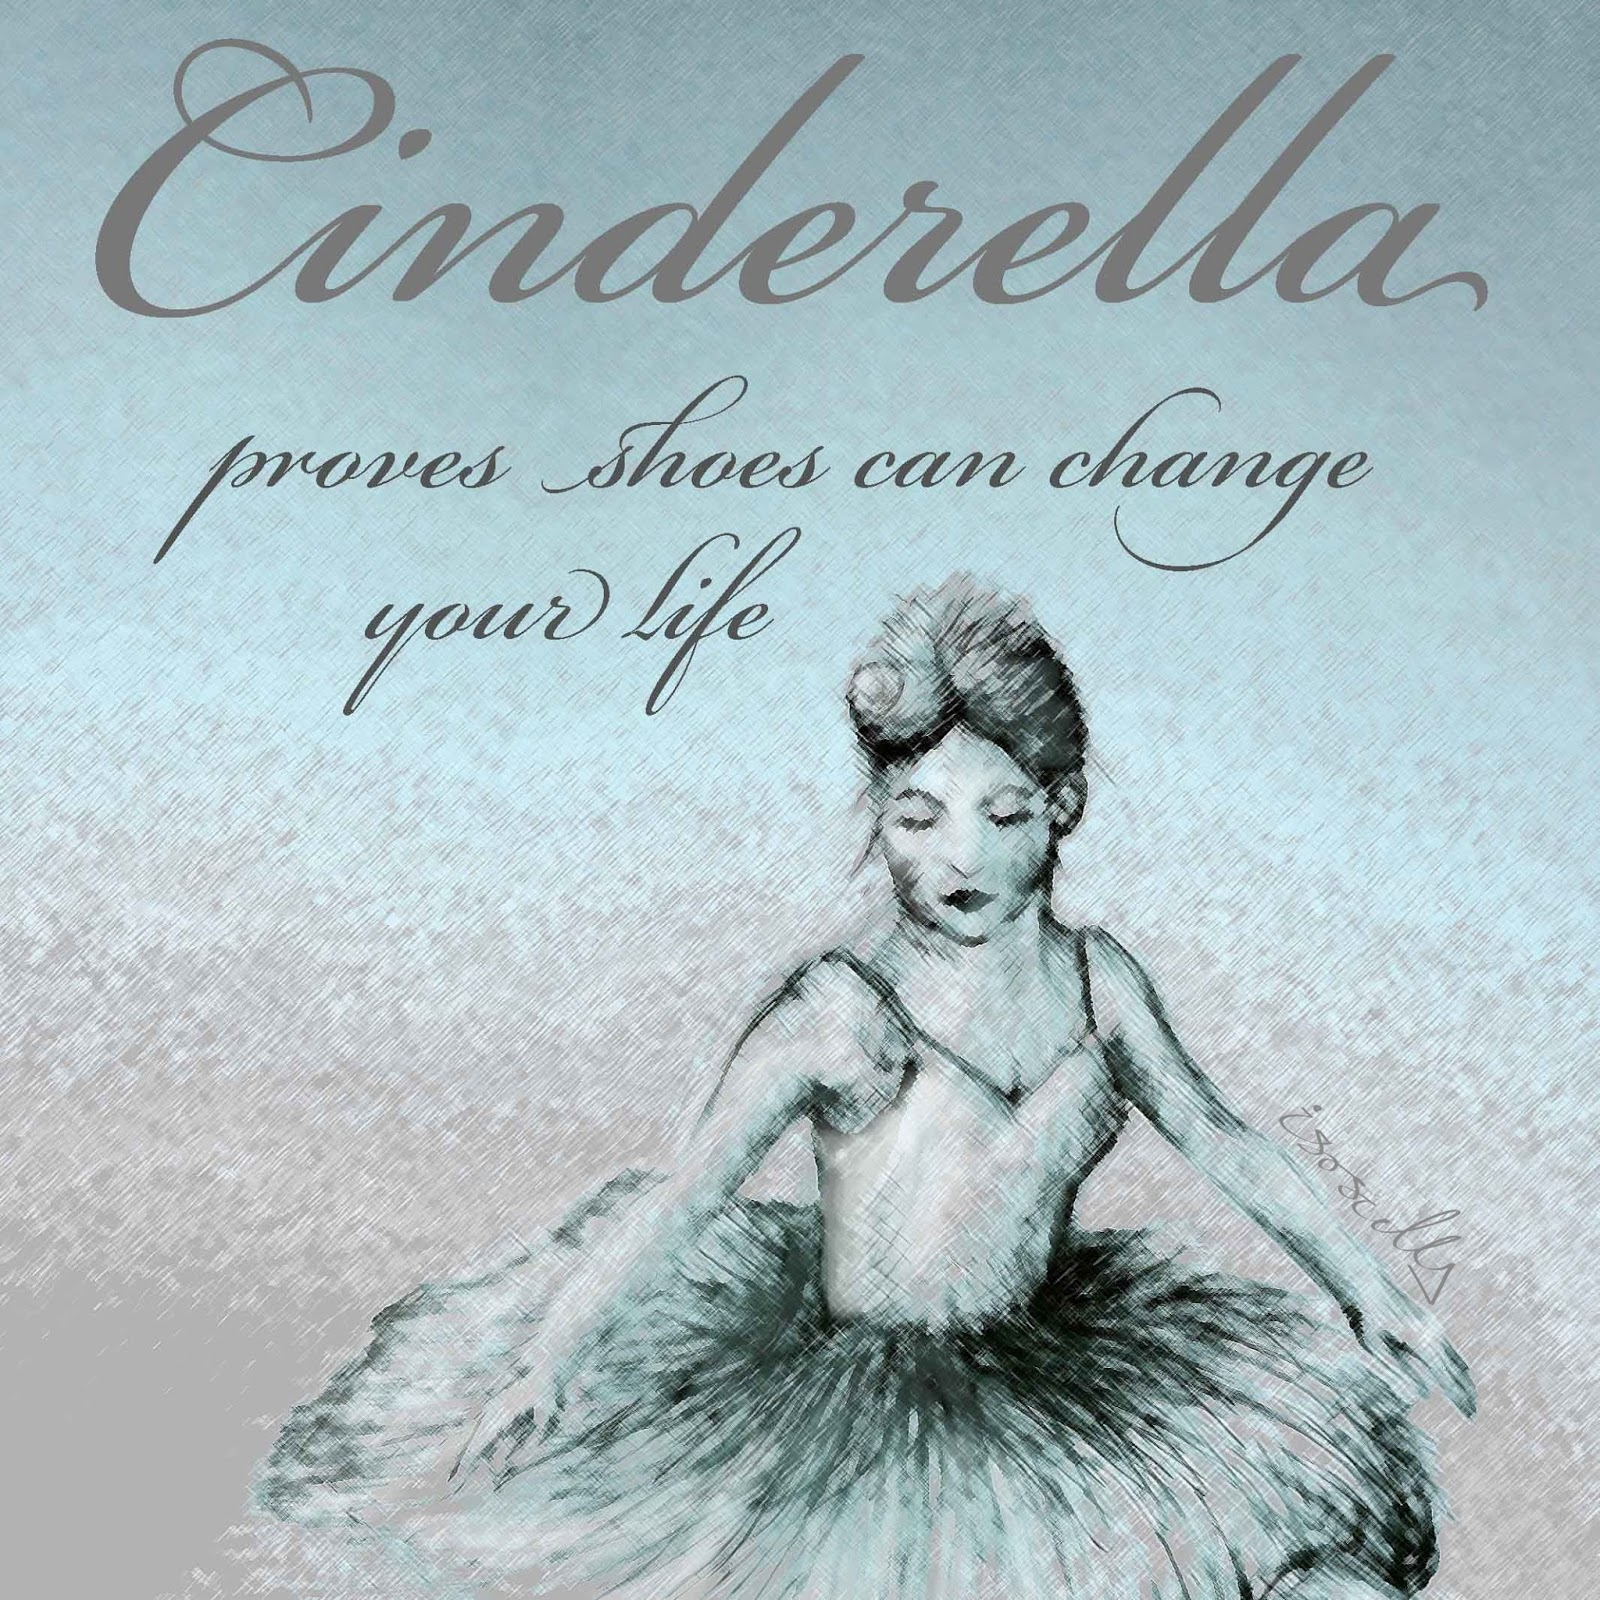 Motivational monday cinderella proves shoes can change your life illustration